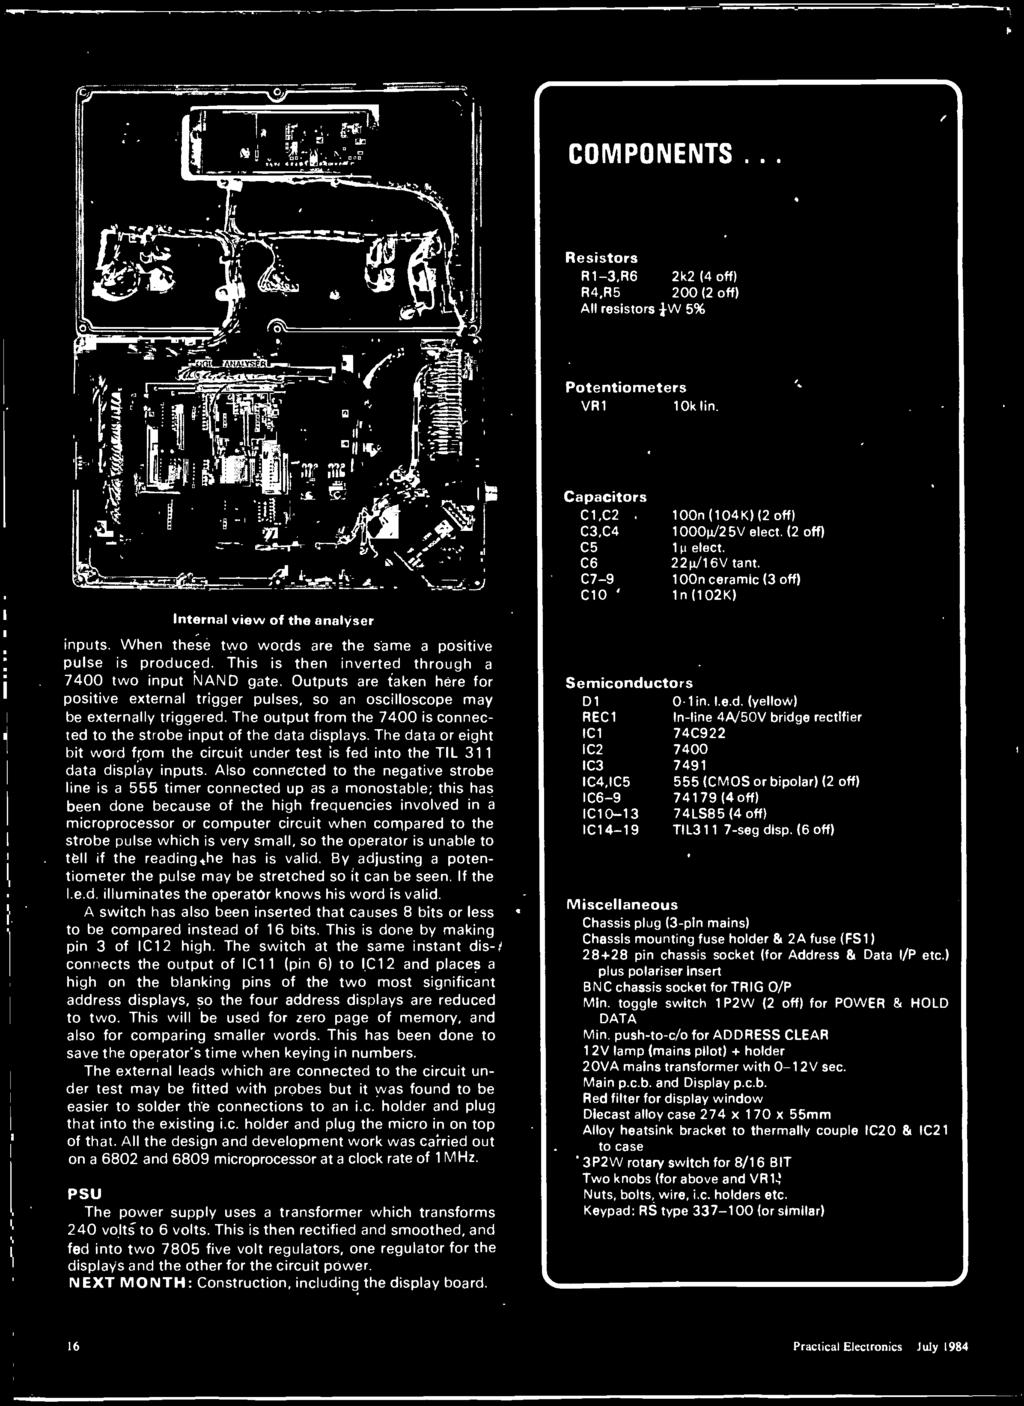 Electron Cs Isu Ige Practi Cal Sli 90p July 1984 Logic Analvbe Switchable Monostable 555 Timer Circuit At Rotary Switch 100ms Also Connected To The Negative Strobe Line Is A Up As